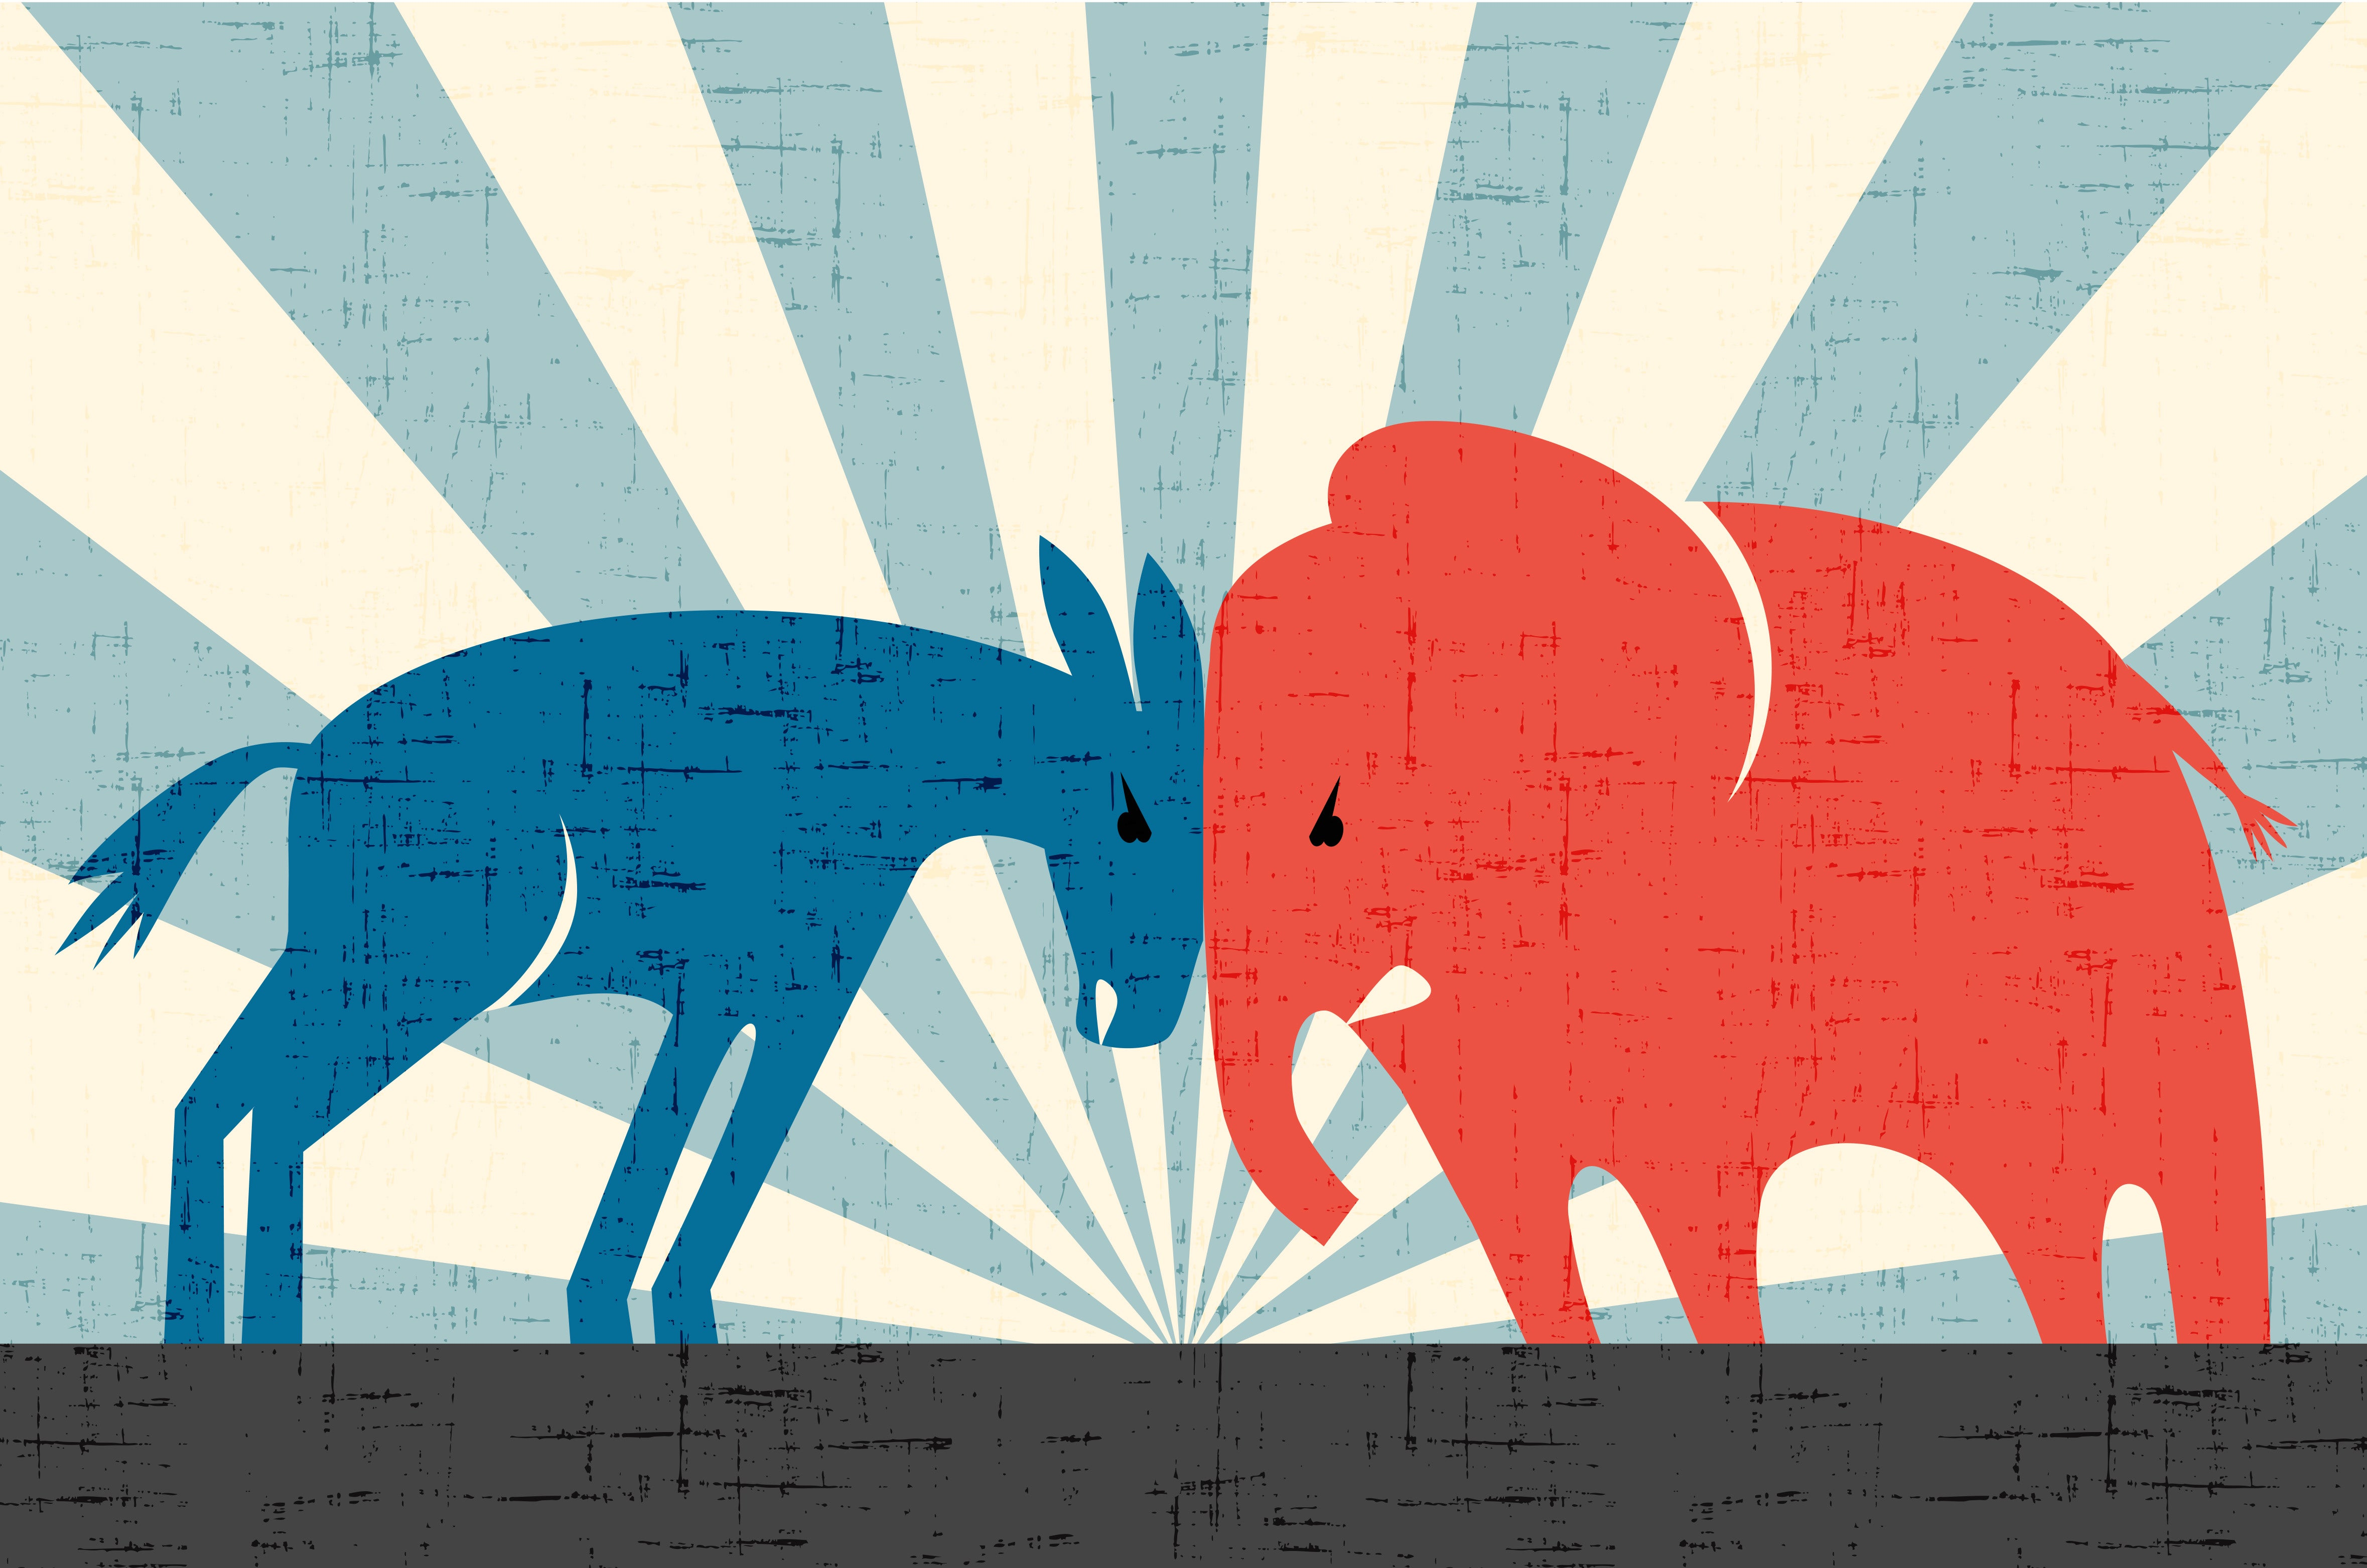 Unconscious Reactions Separate Liberals and Conservatives